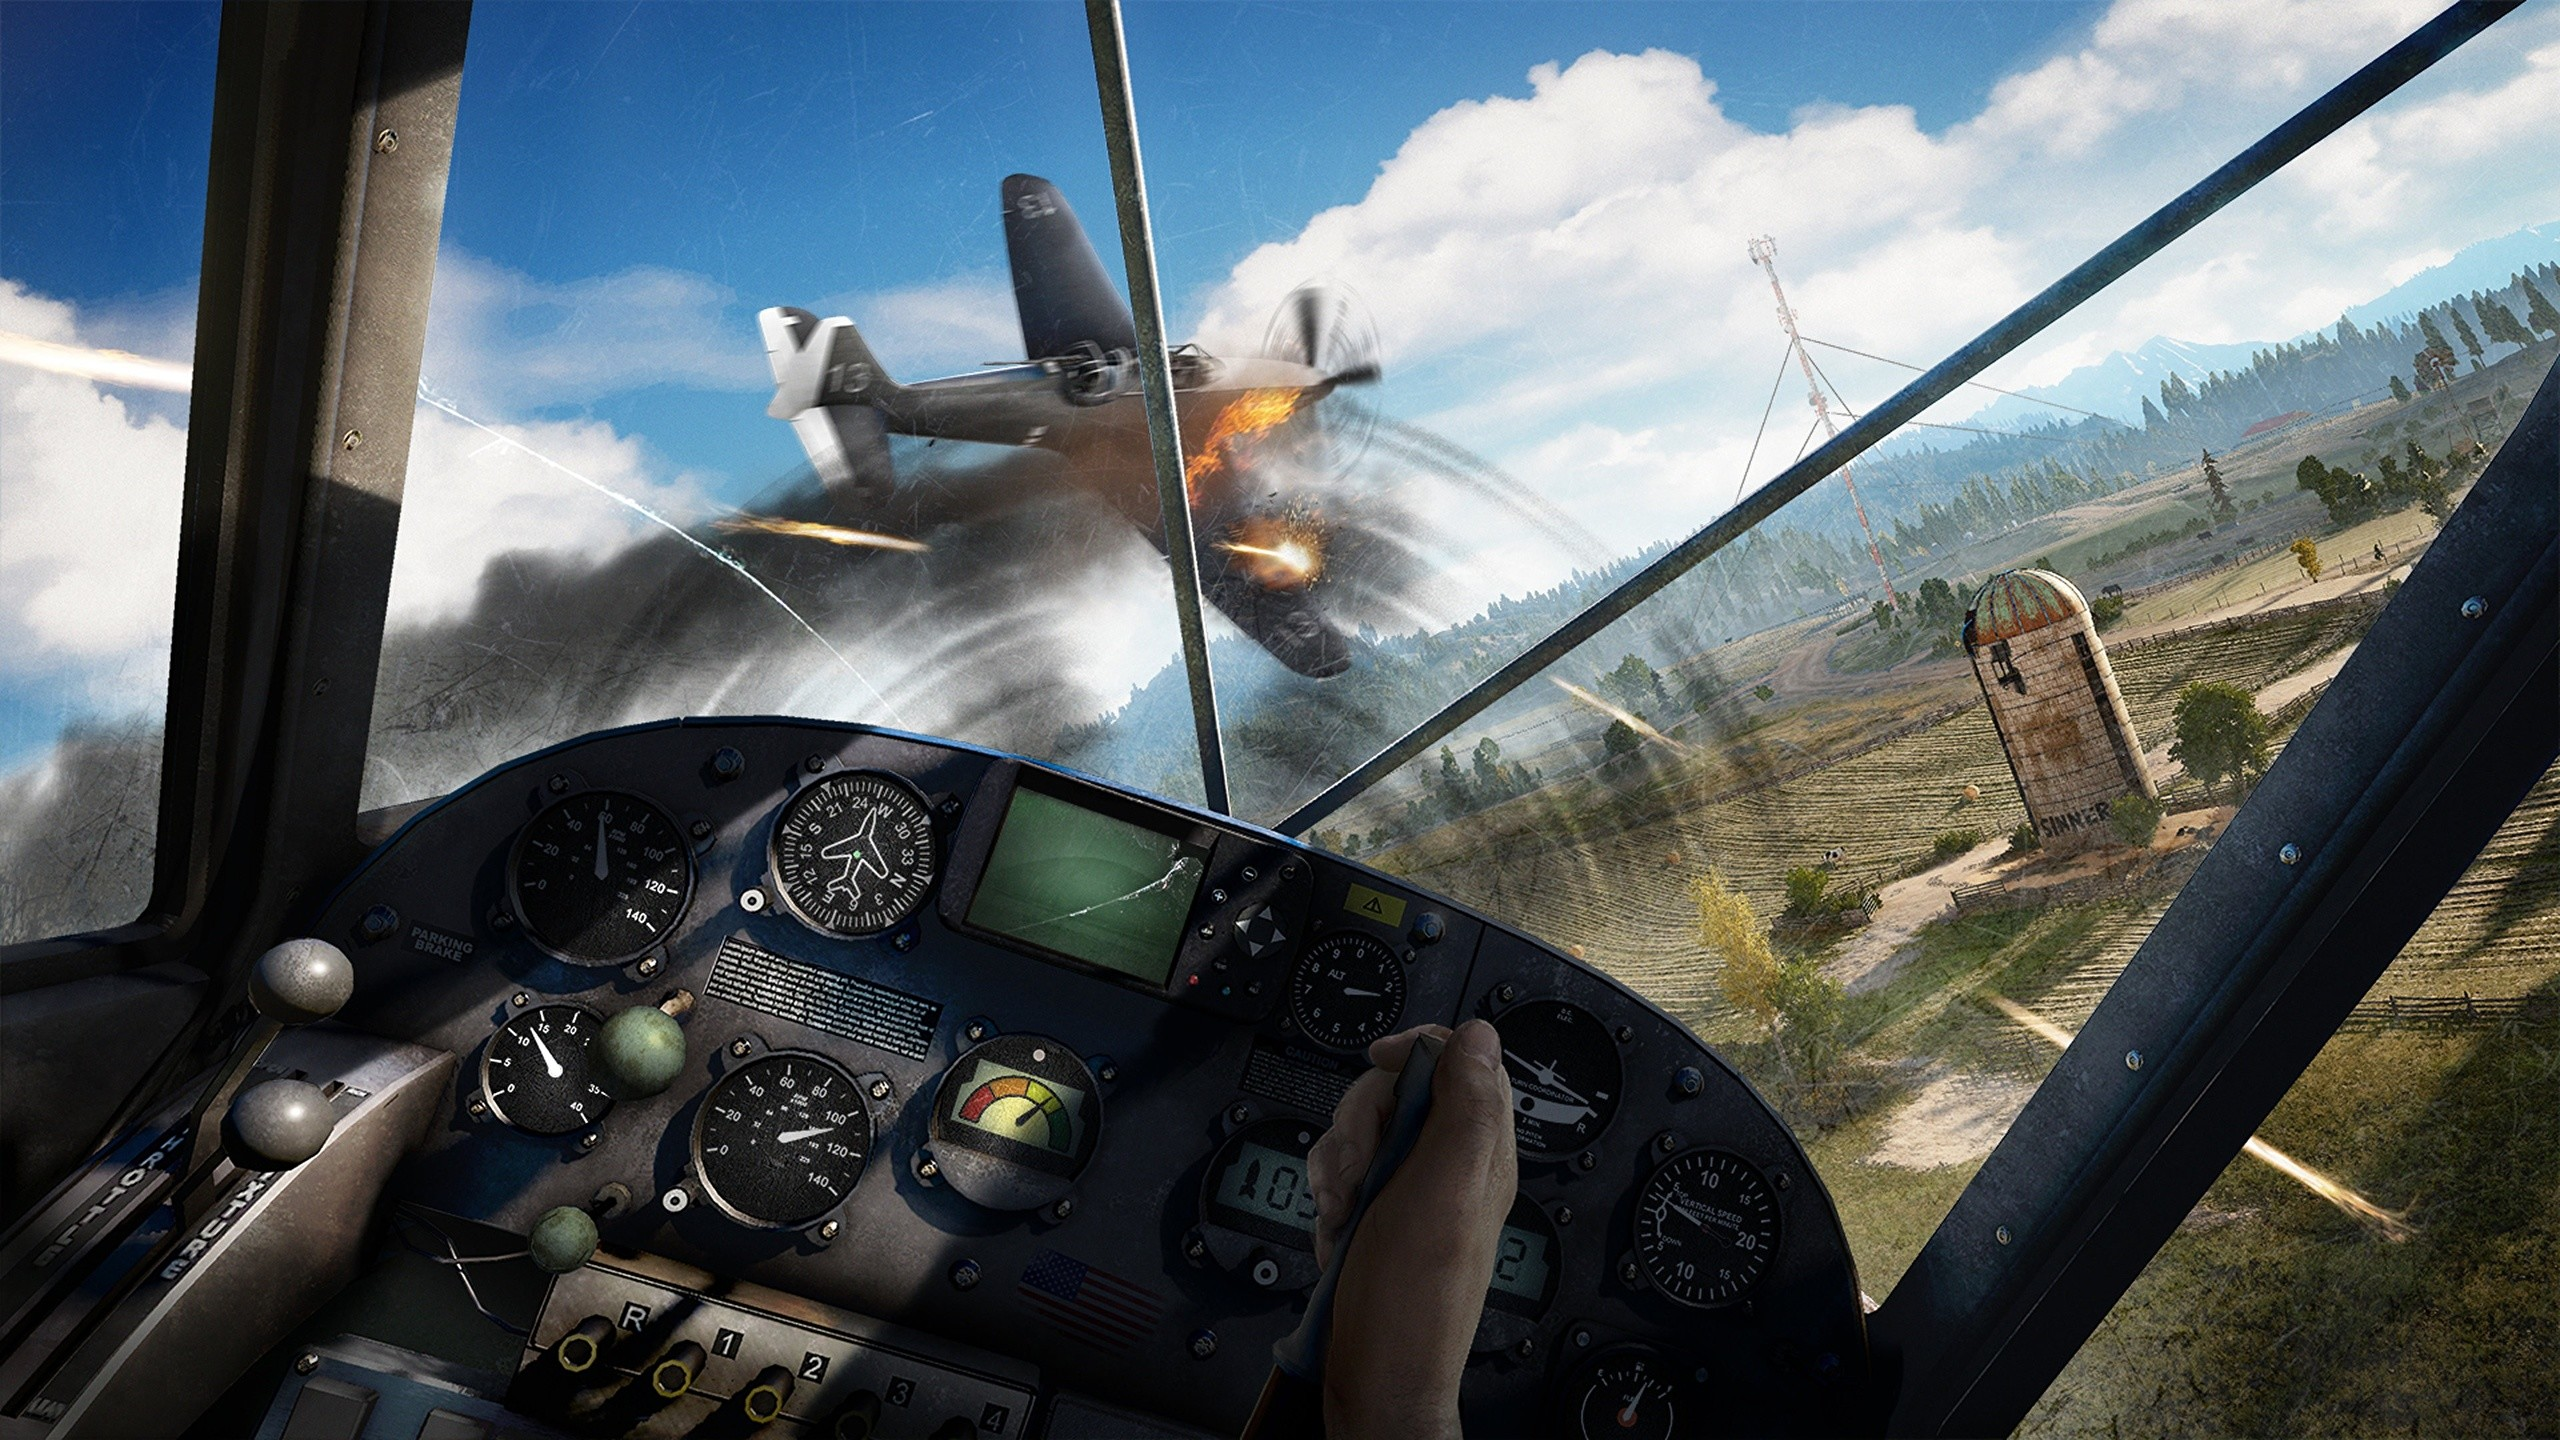 Pictures Far Cry 5 Airplane Cockpit Games Flight 2560×1440